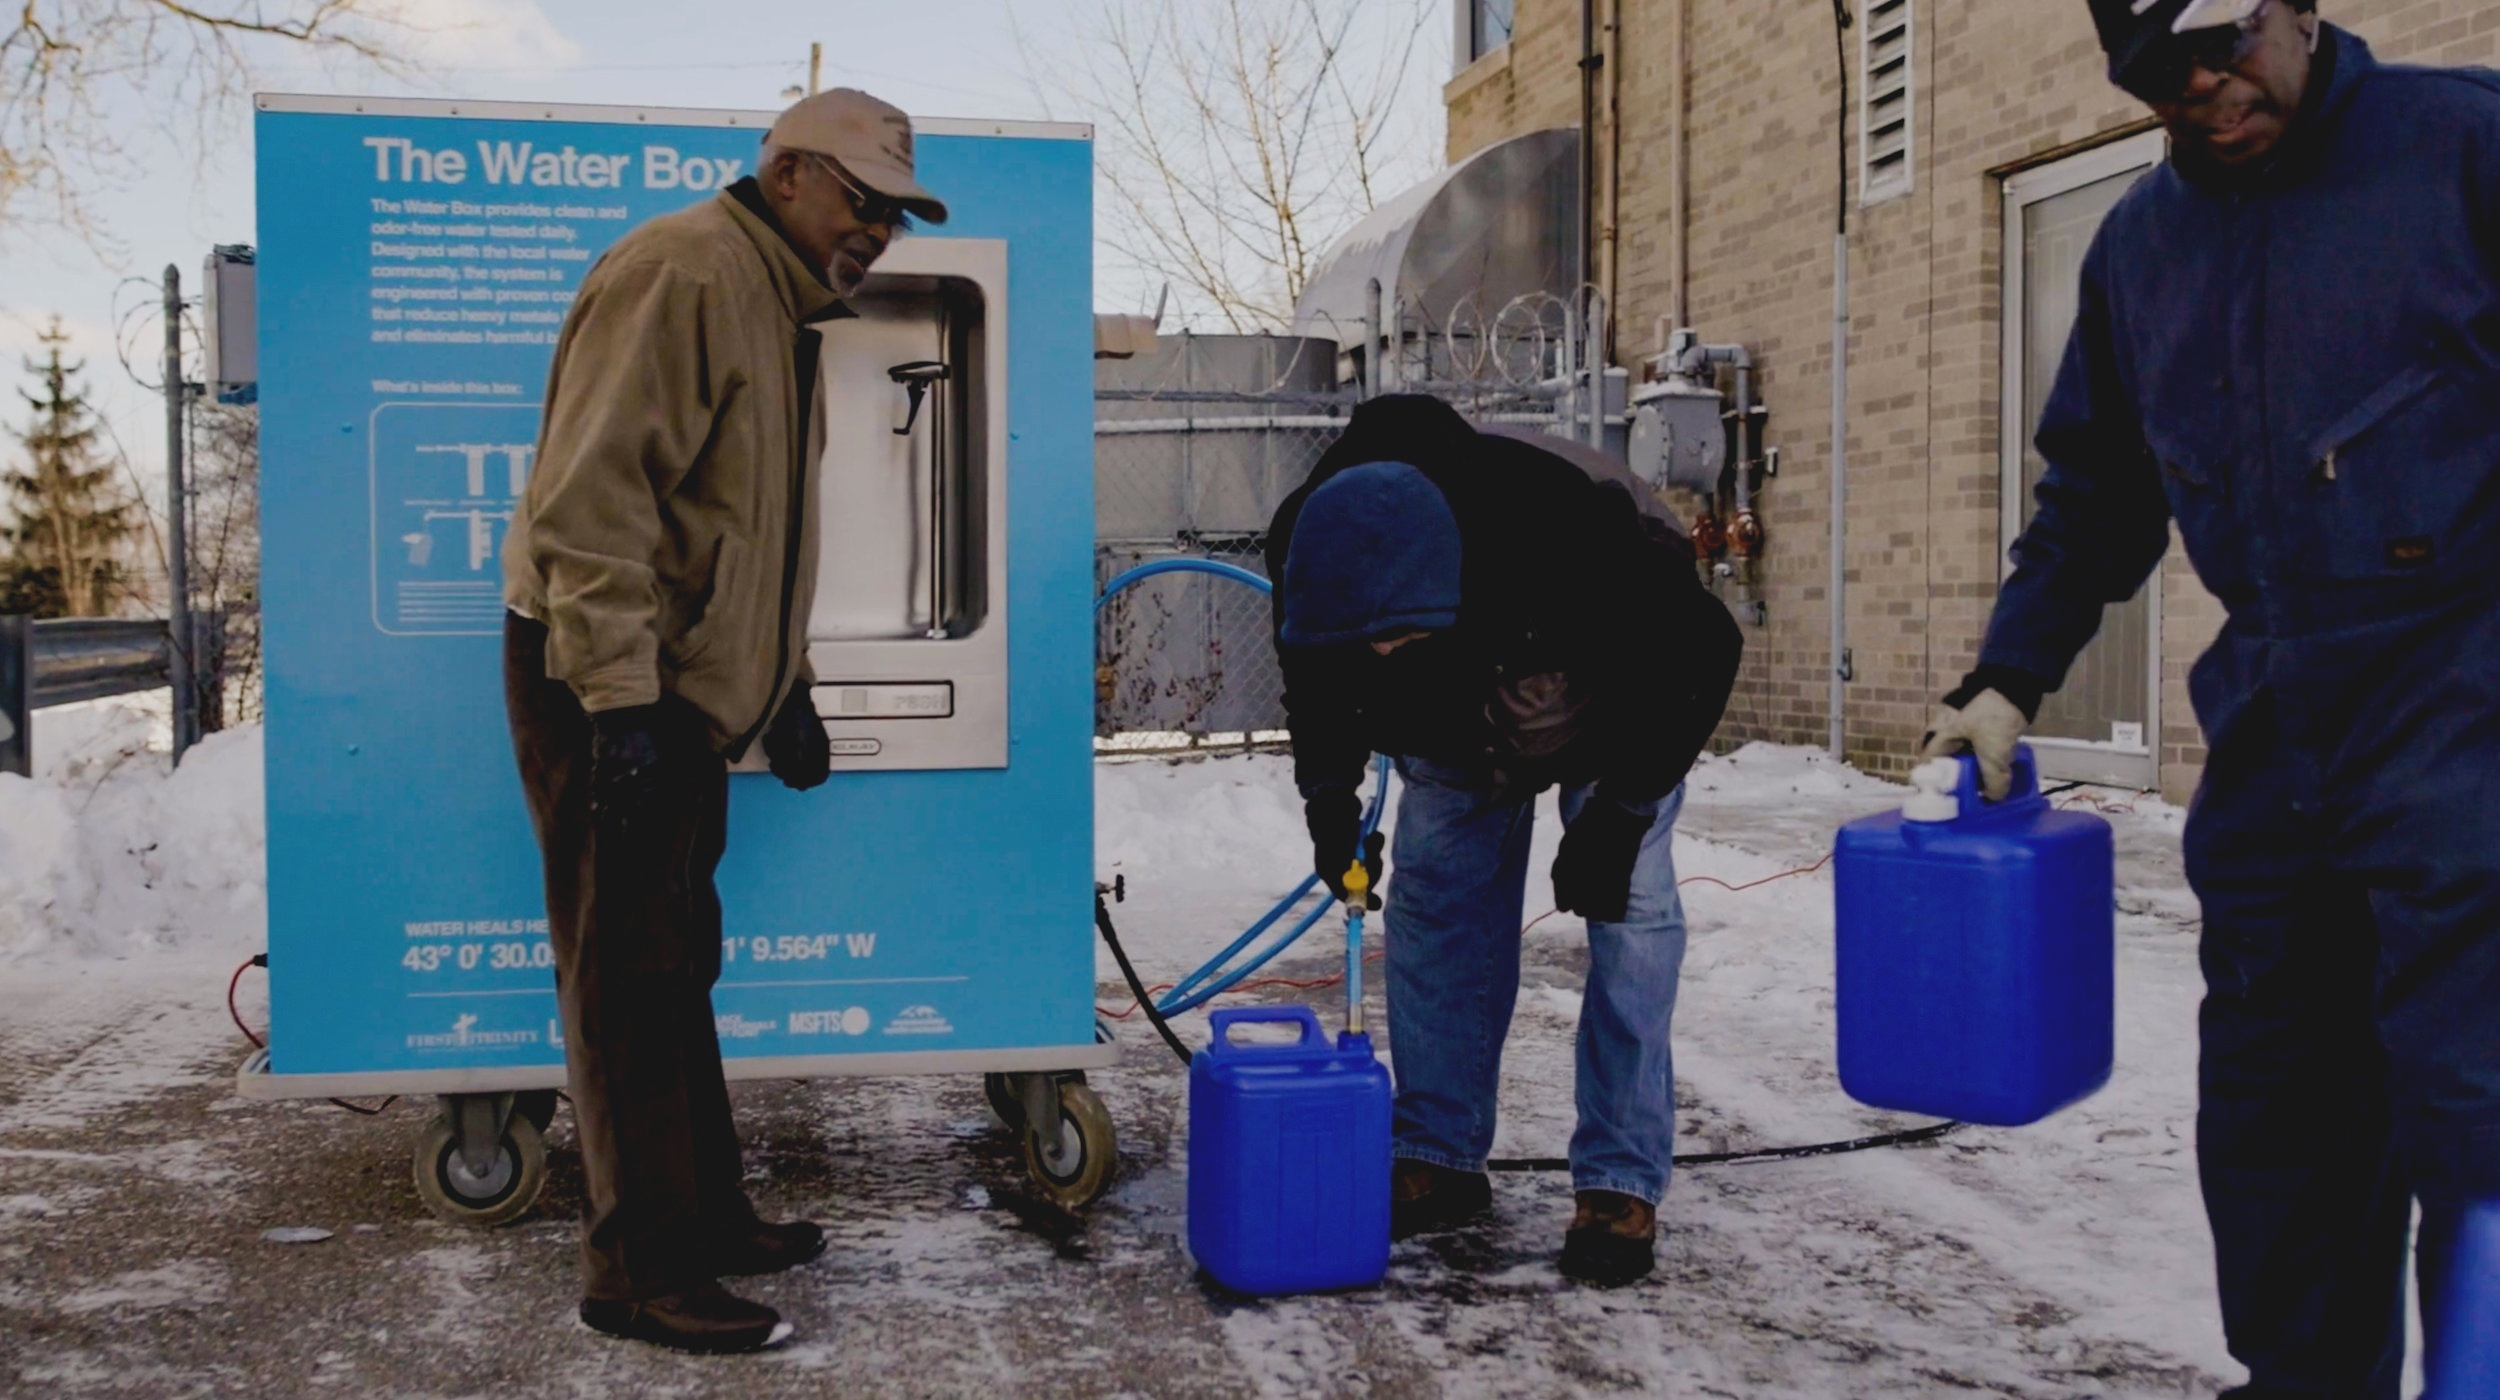 A NEW APPROACH - TO ADDRESSING A COMMUNITY'S WATER CRISIS